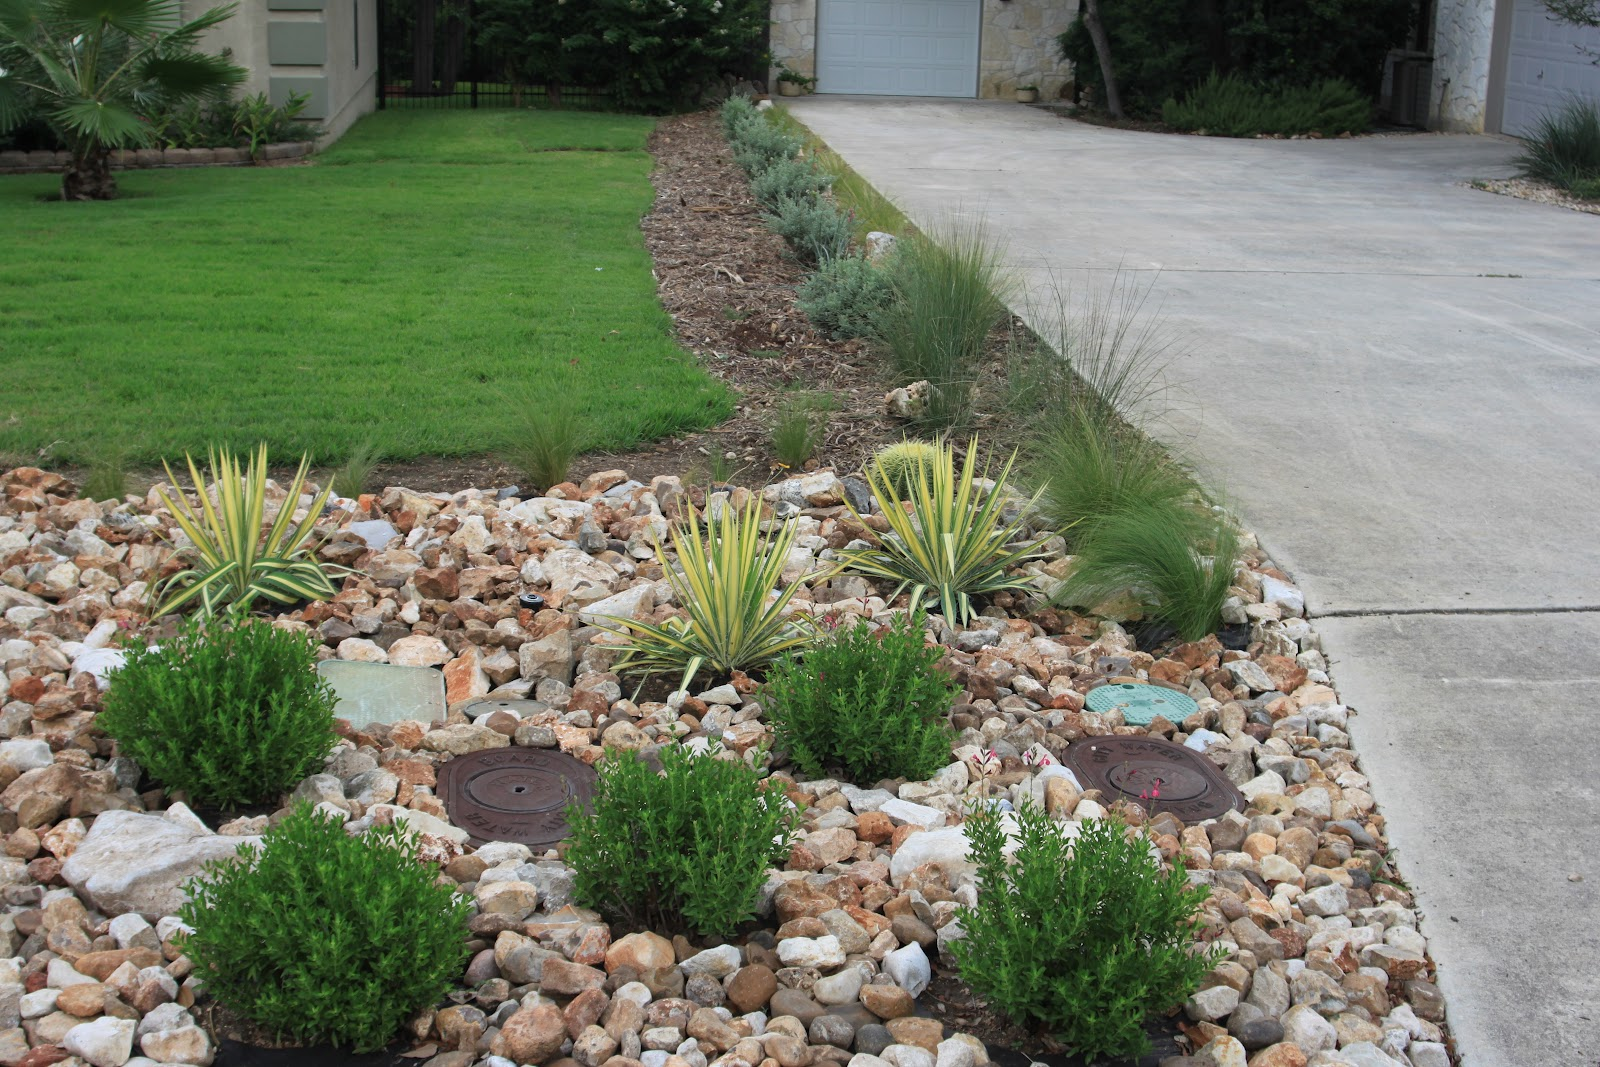 Willing landscape front lawn landscaping ideas using for Garden landscaping stones